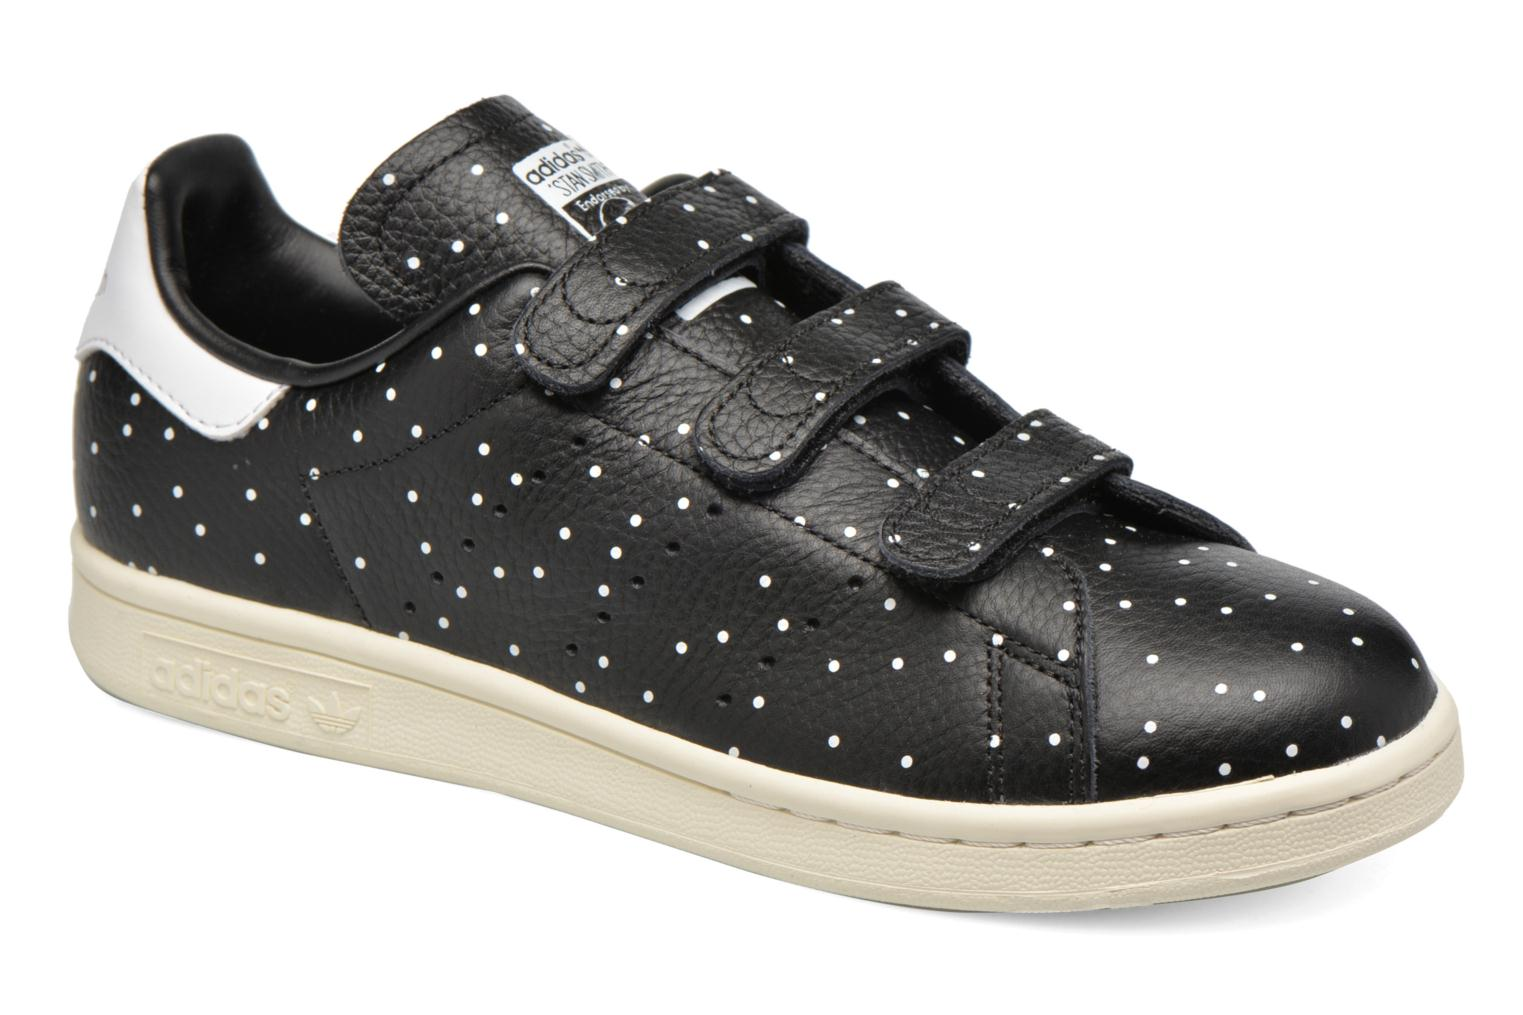 Stan Smith Cf W Ftwbla/Ftwbla/Noir